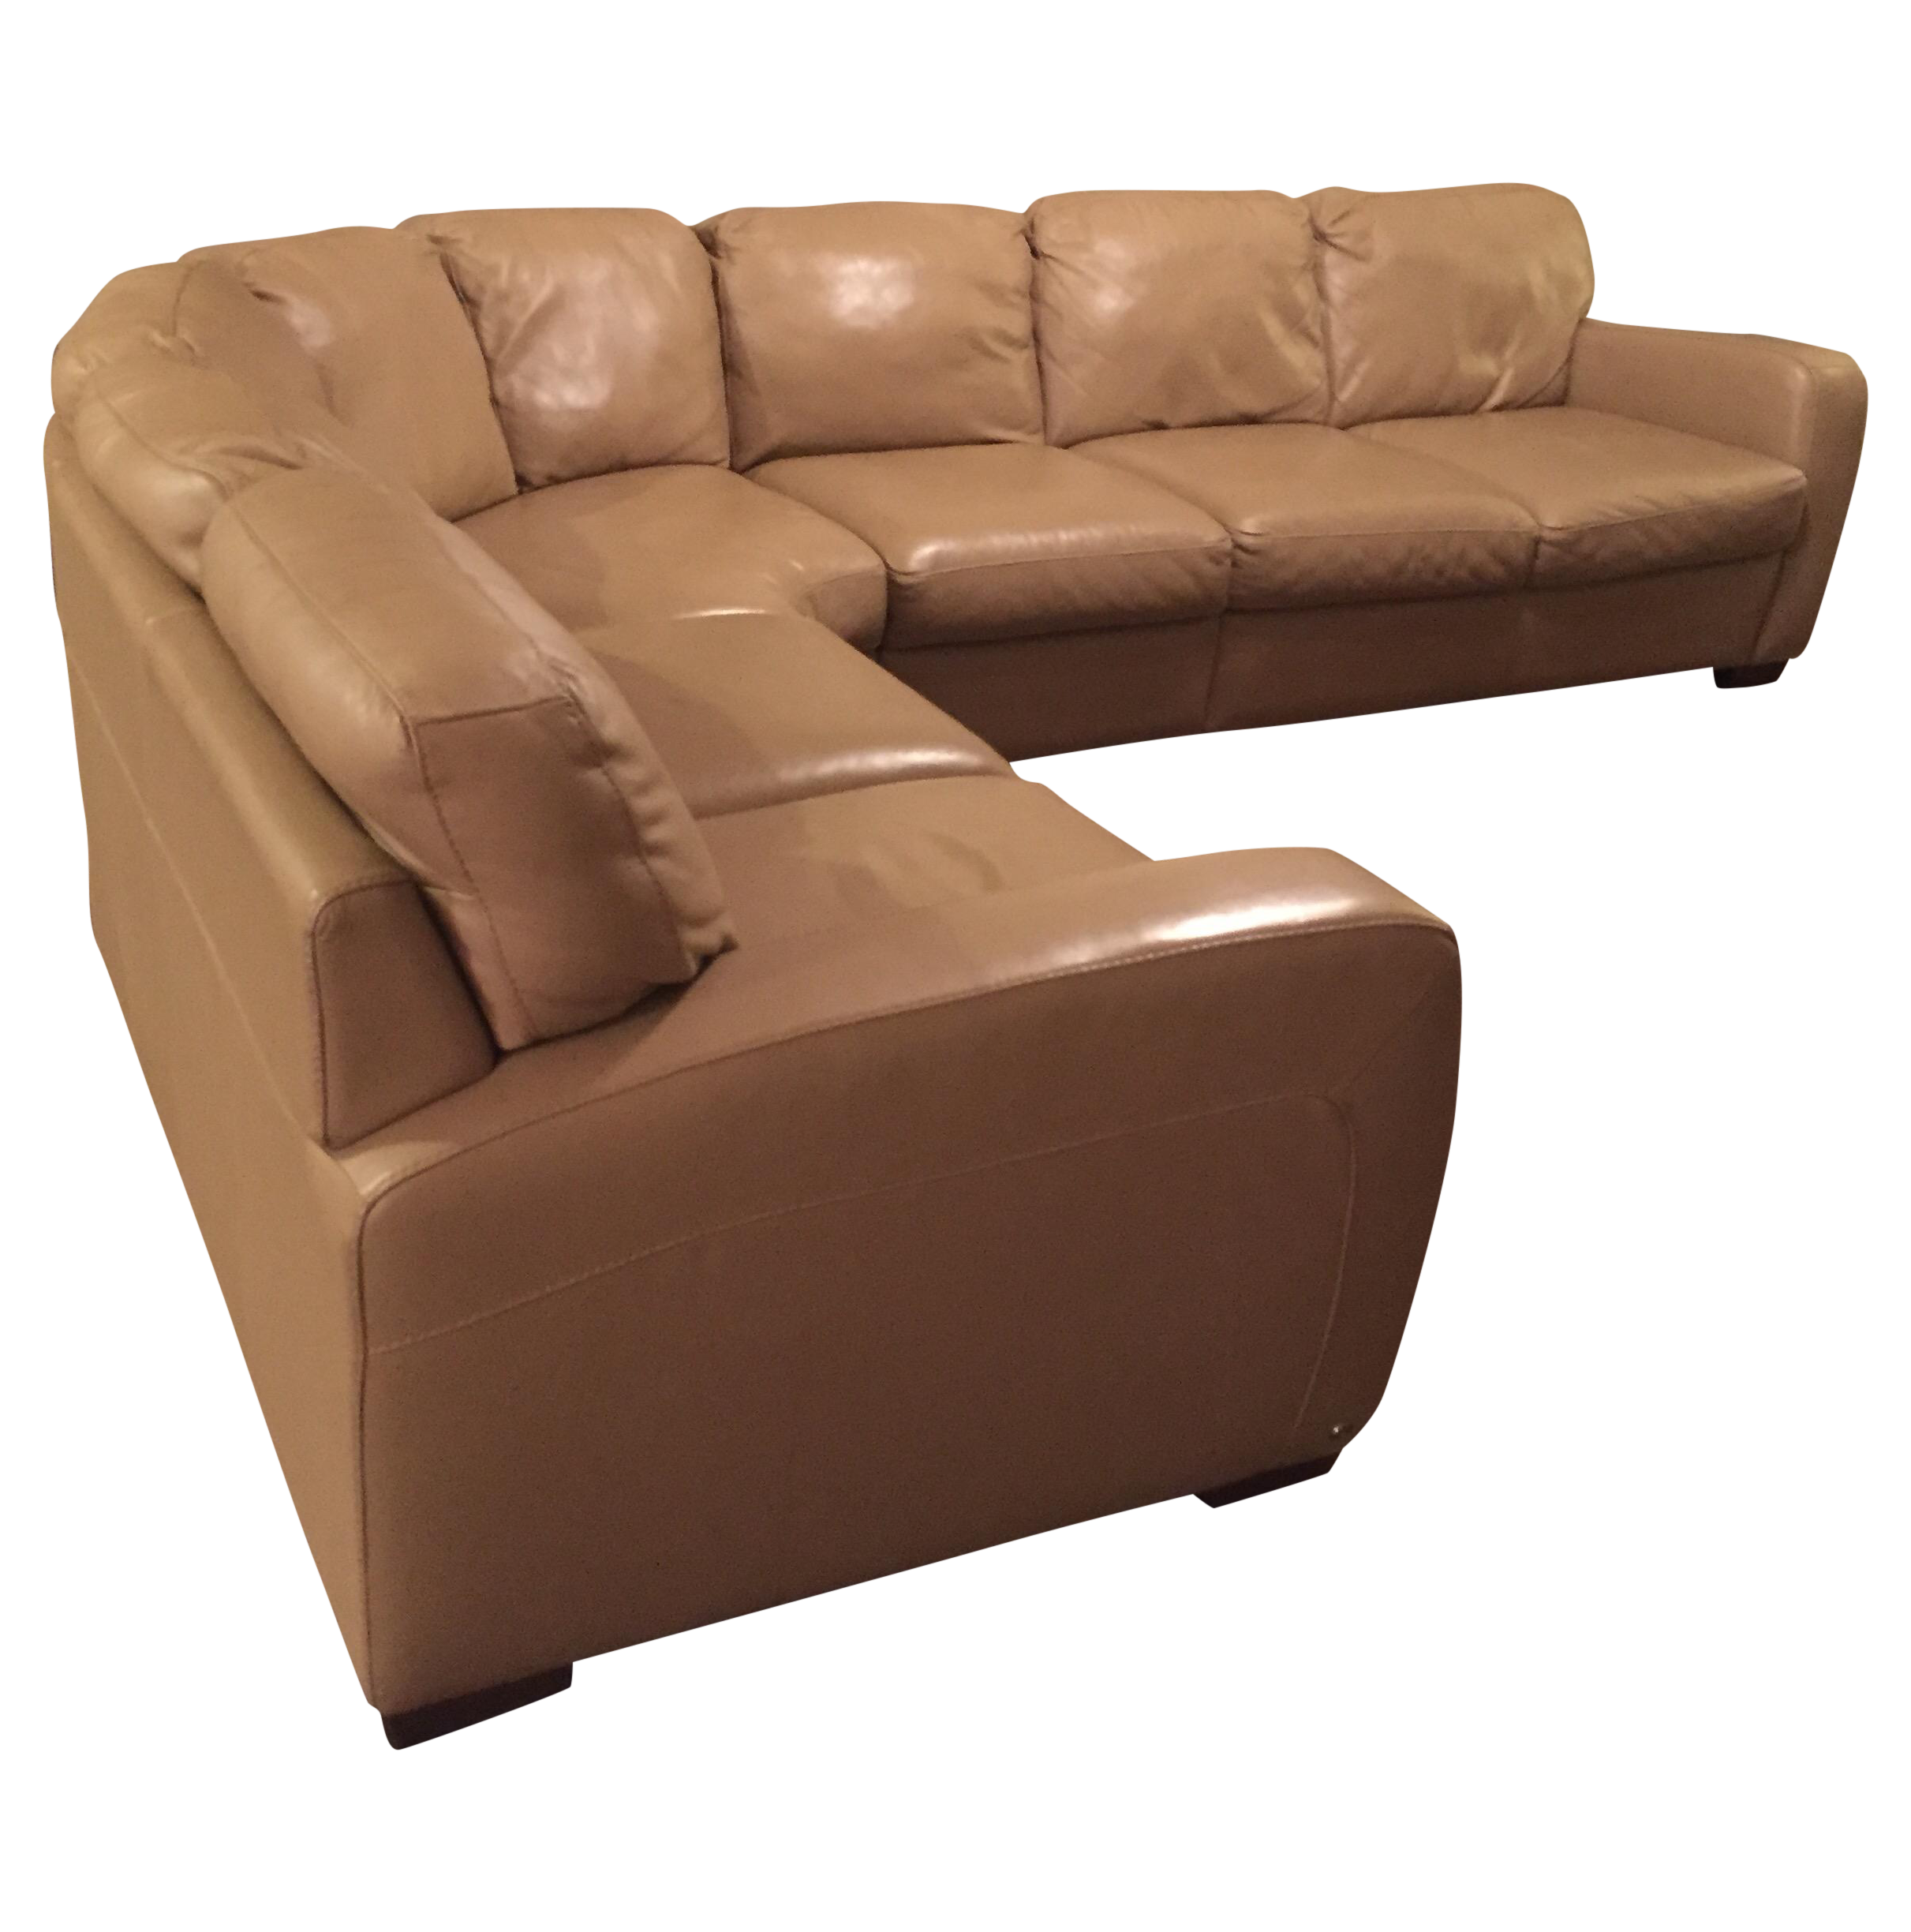 Natuzzi Leather Sectional Sofa Natuzzi Editions Becker Furniture World Twin Cities Thesofa